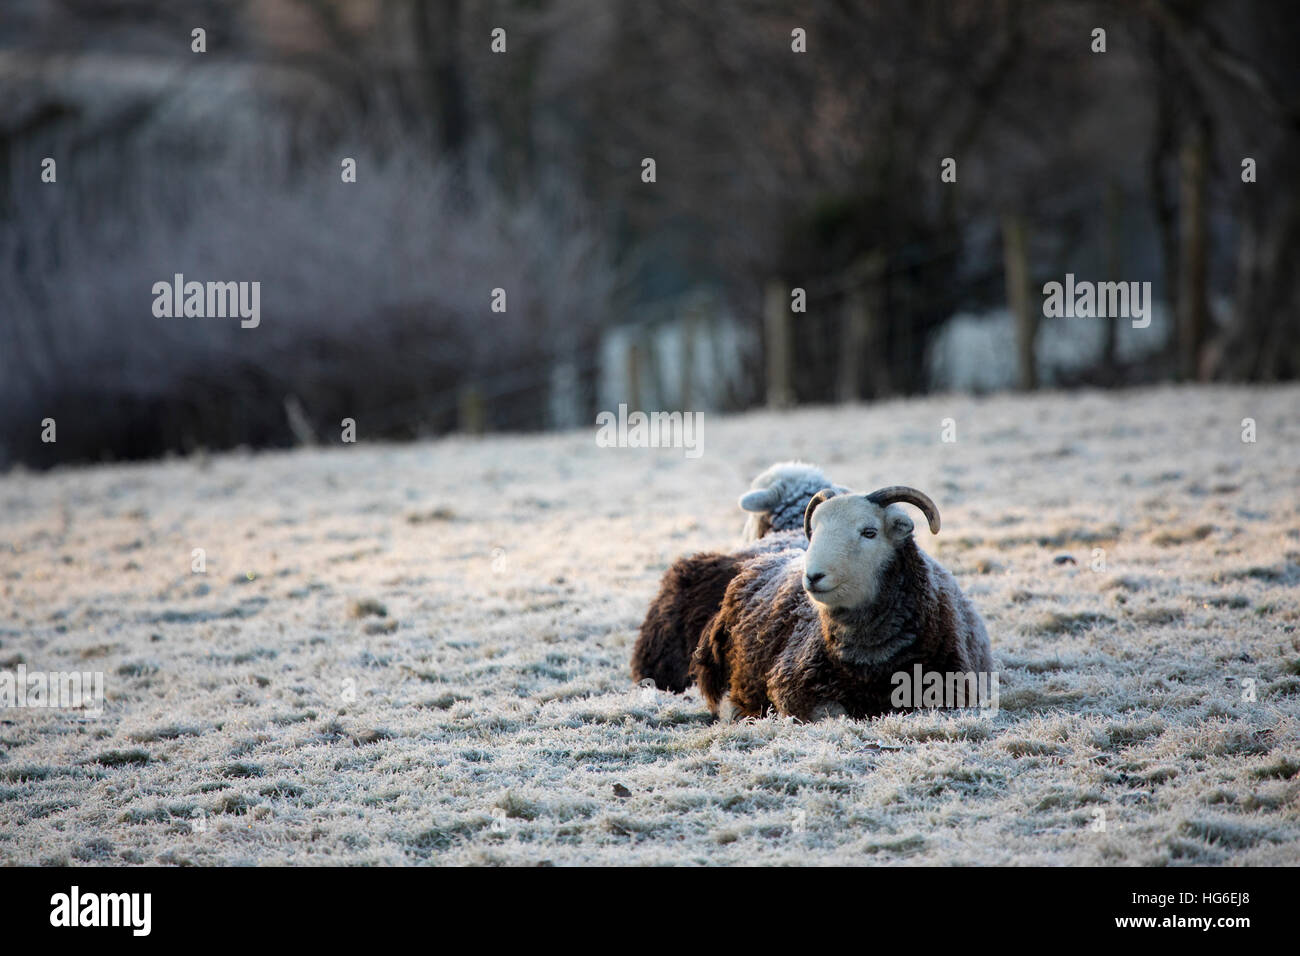 Sheep resting during a heavy overnight frost in the village of Nannerch, Flintshire, Wales, UK - Stock Image